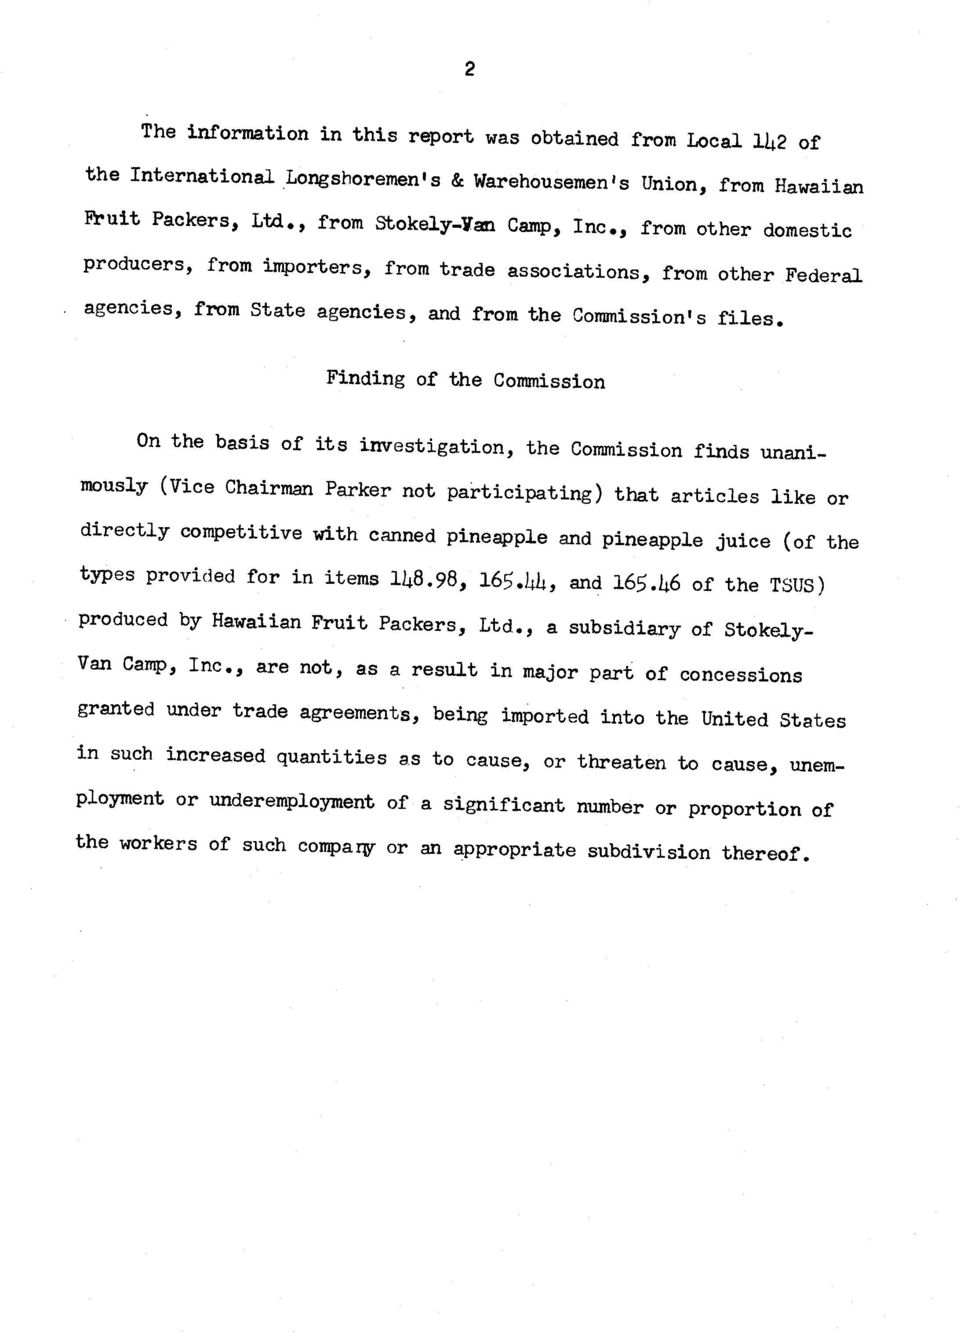 Finding of the Commission On the basis of its investigation, the Commission finds unanimously (Vice Chairman Parker not participating) that articles like or directly competitive with canned pineapple